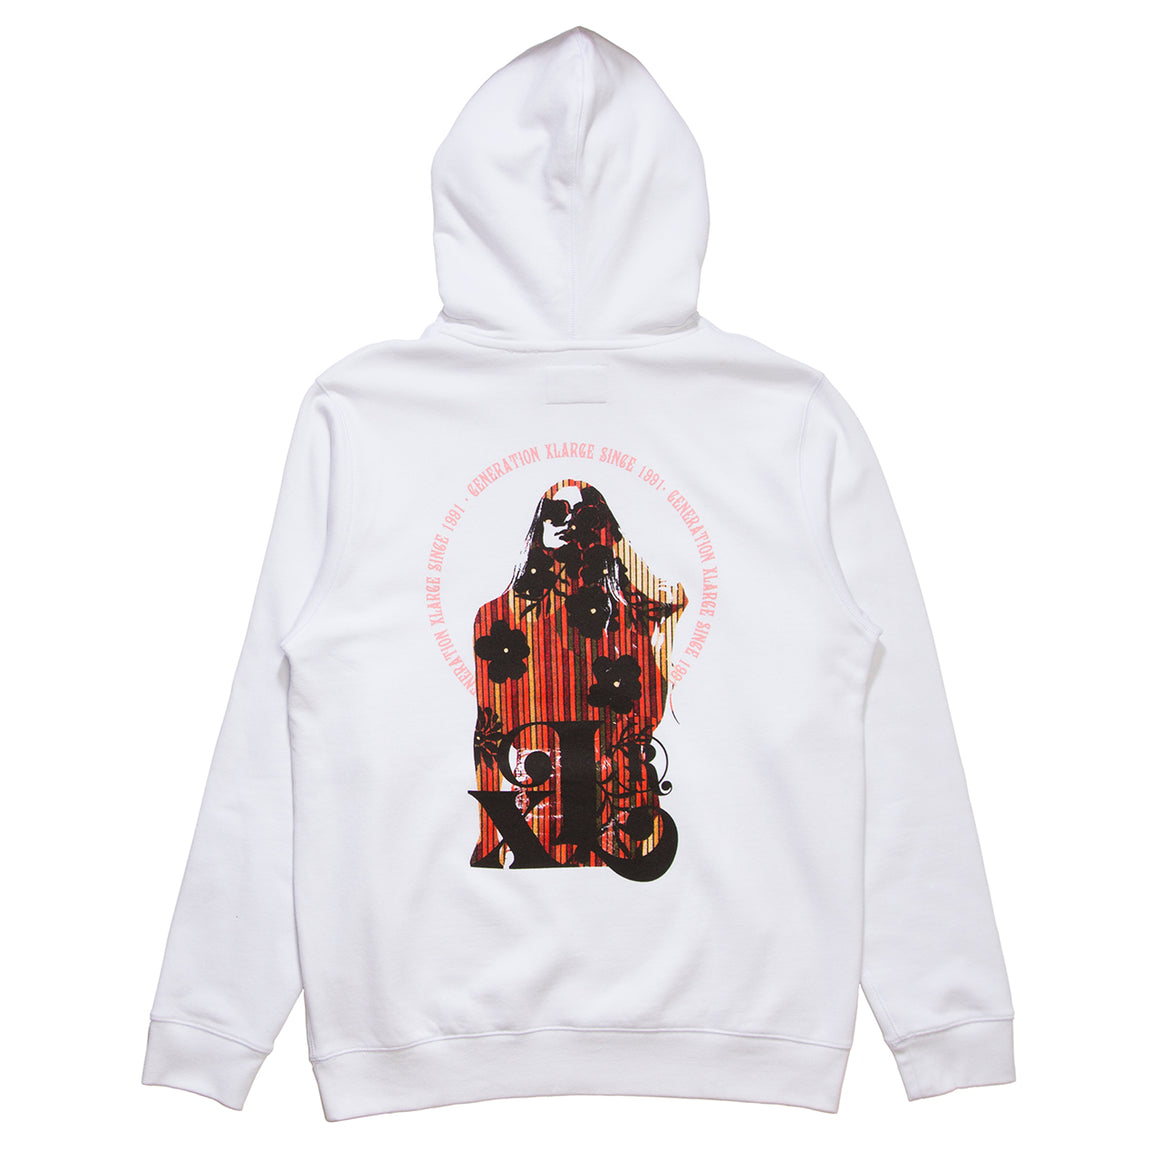 DAZED PULLOVER HOODIE - X-Large Clothing